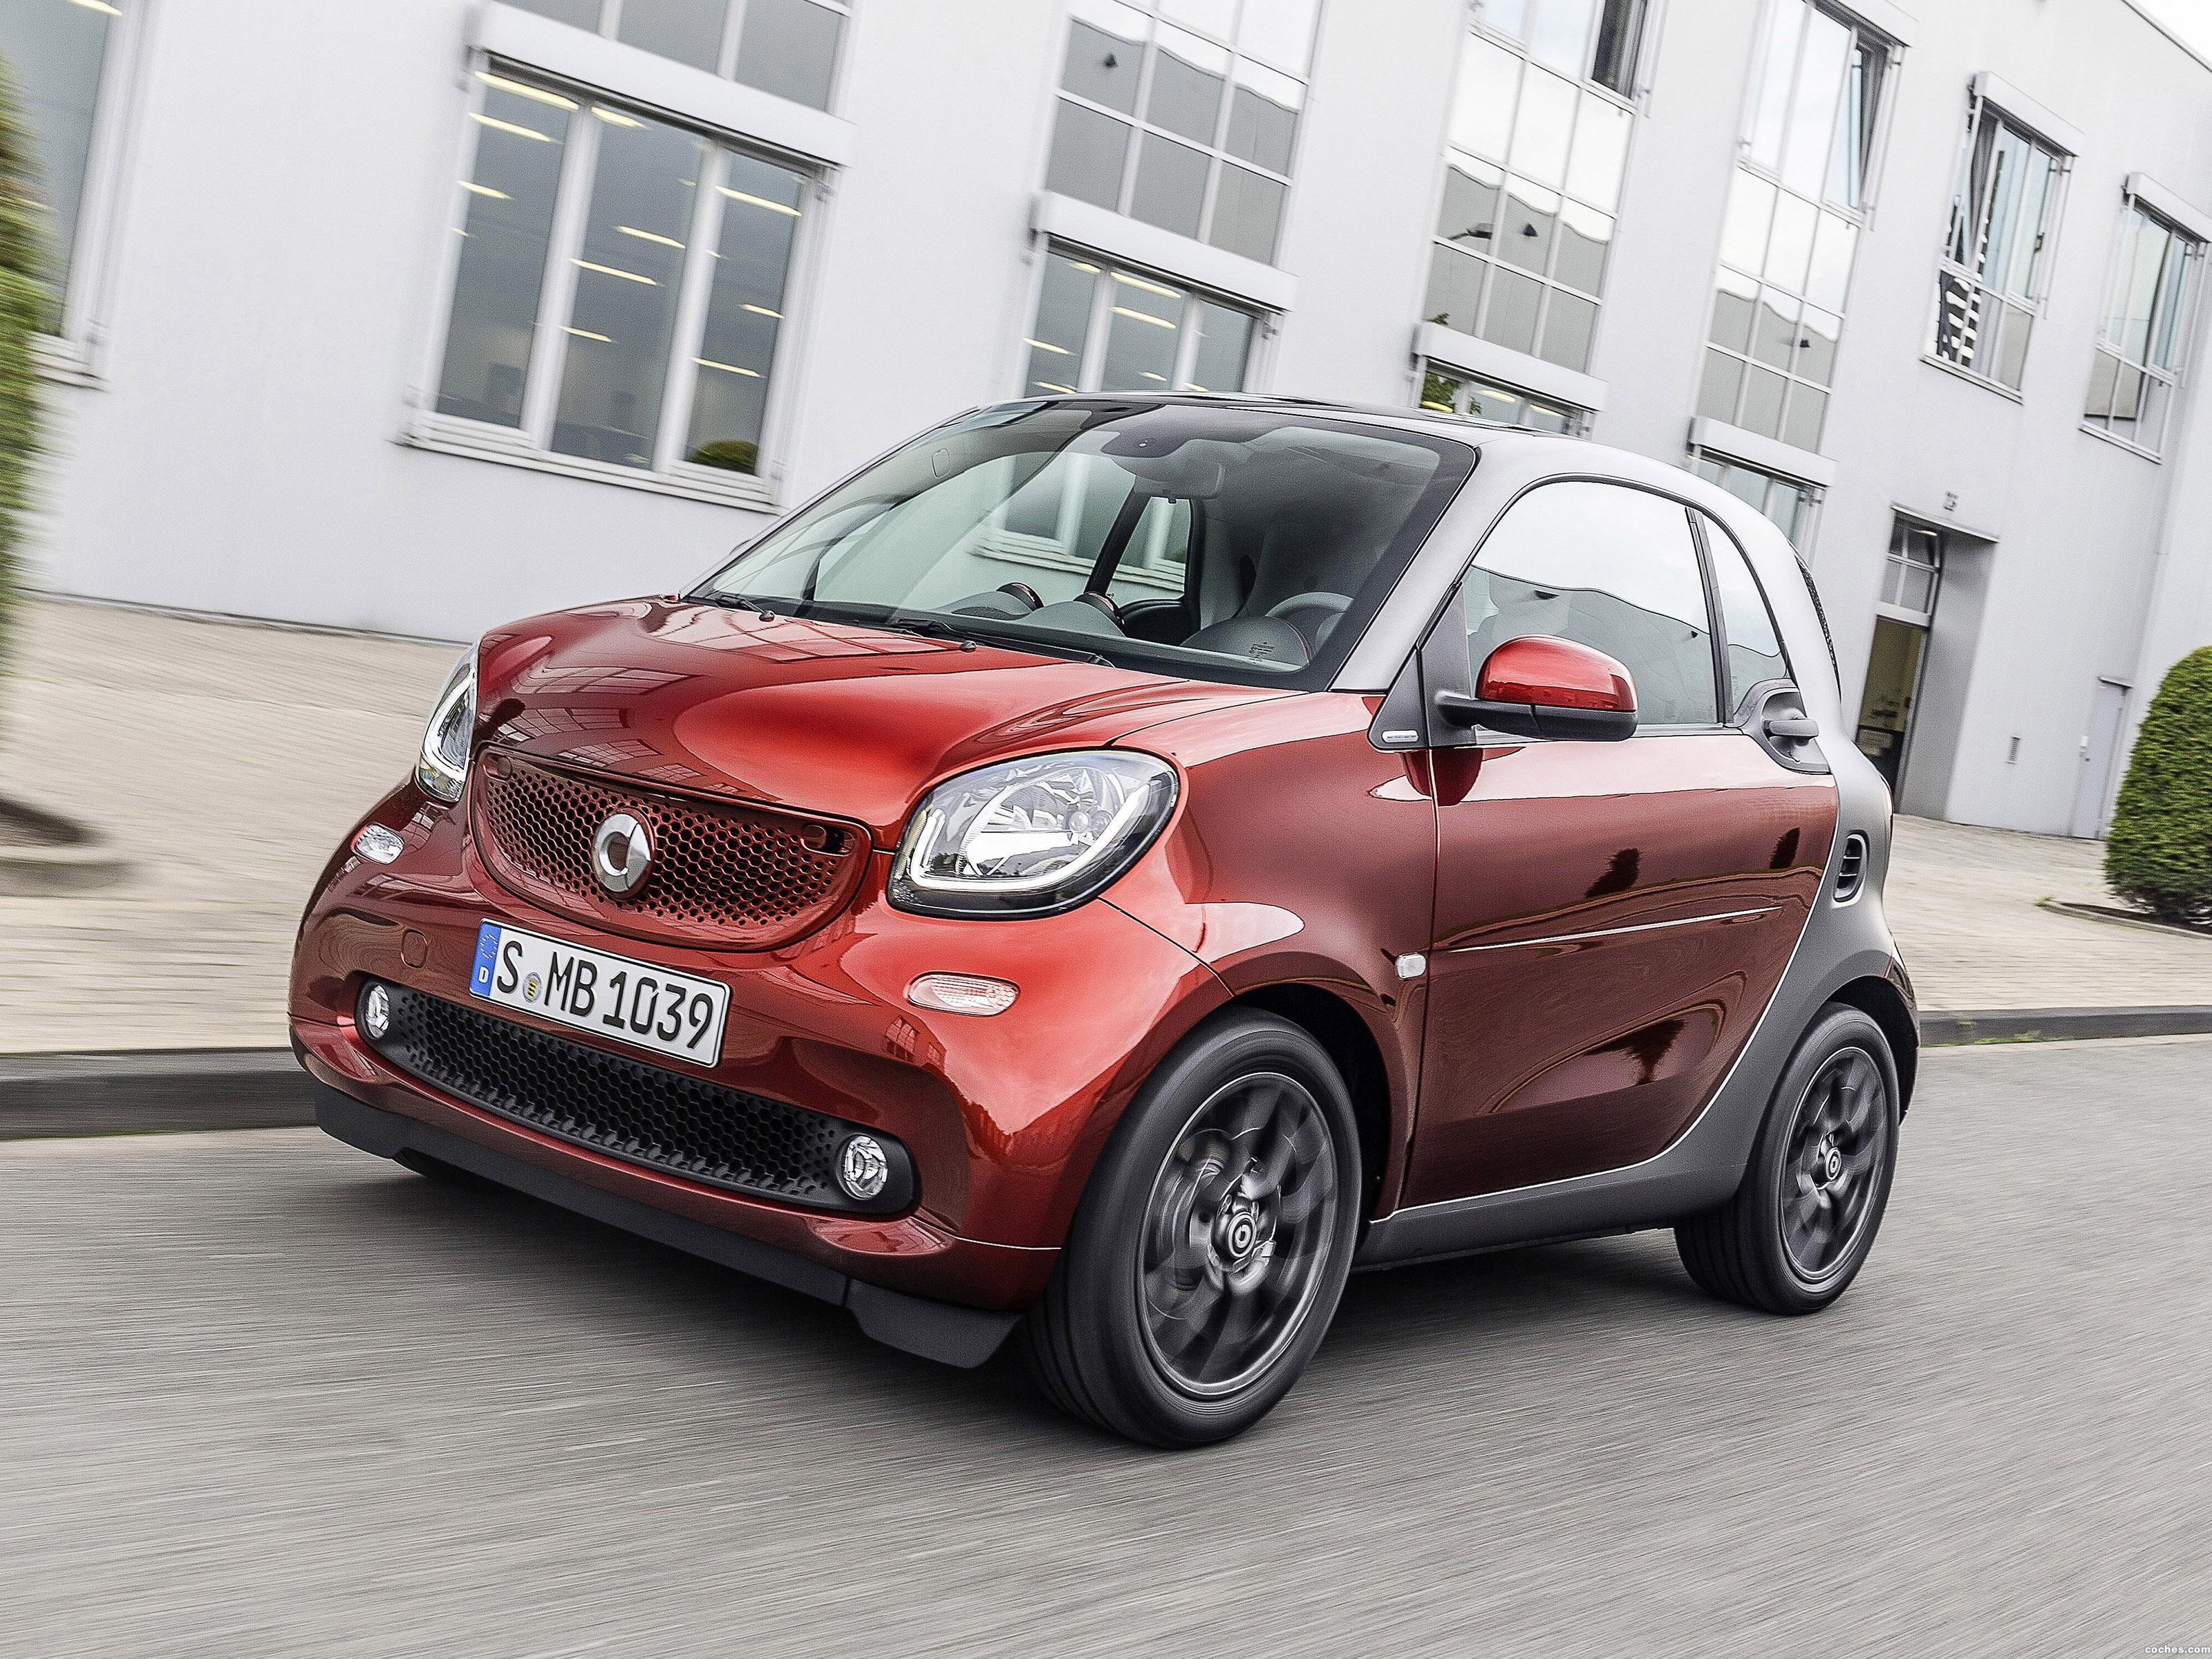 Foto 0 de Brabus Smart ForTwo Tailor Made Coupe C453 2015